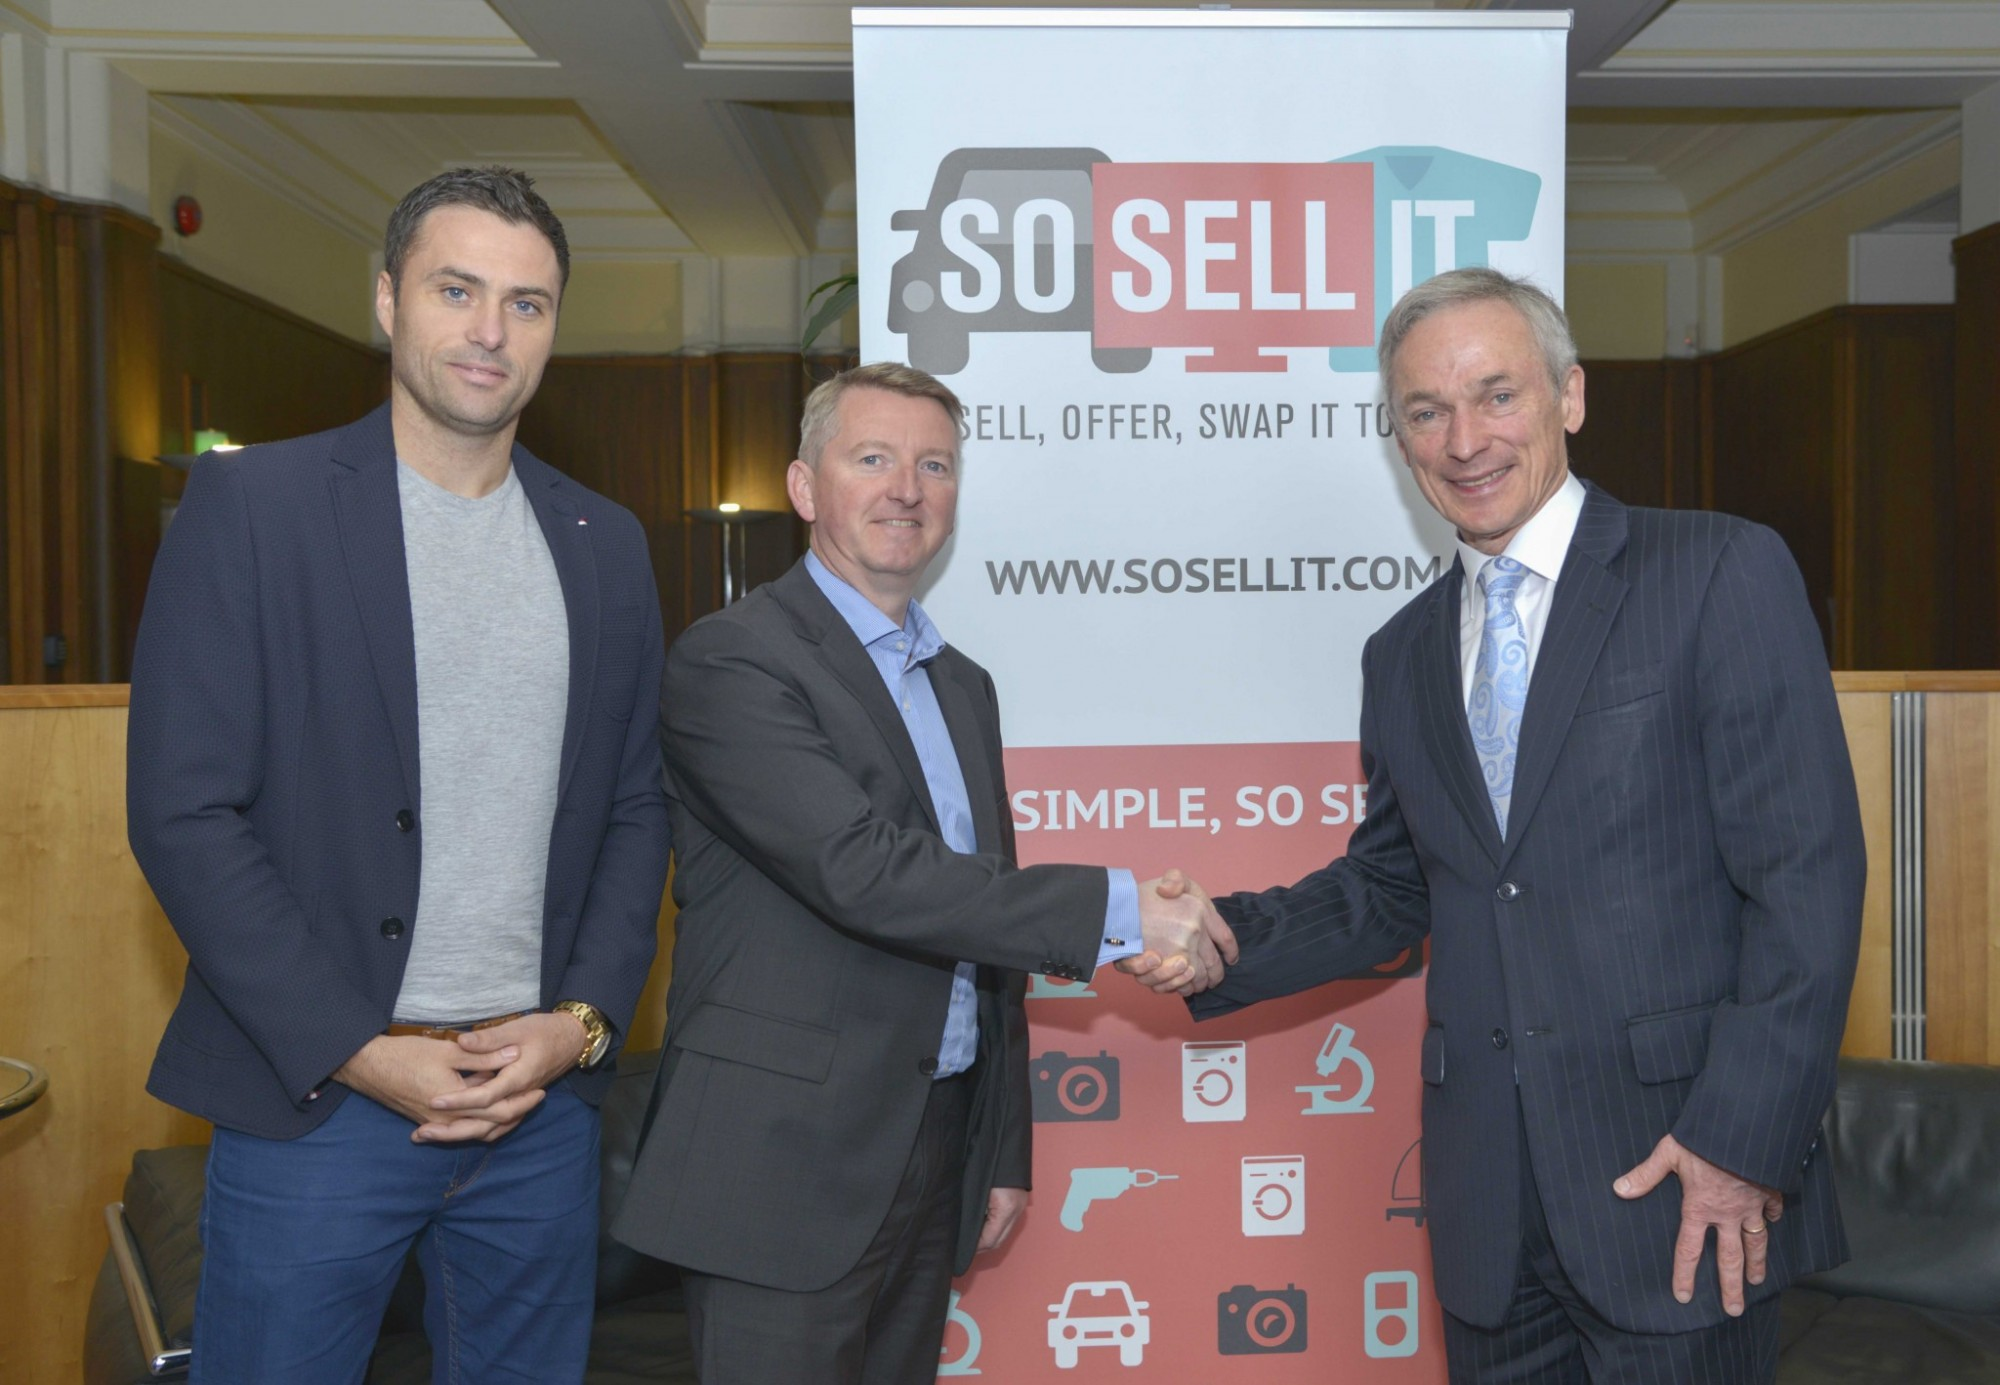 So Sell It UK launch